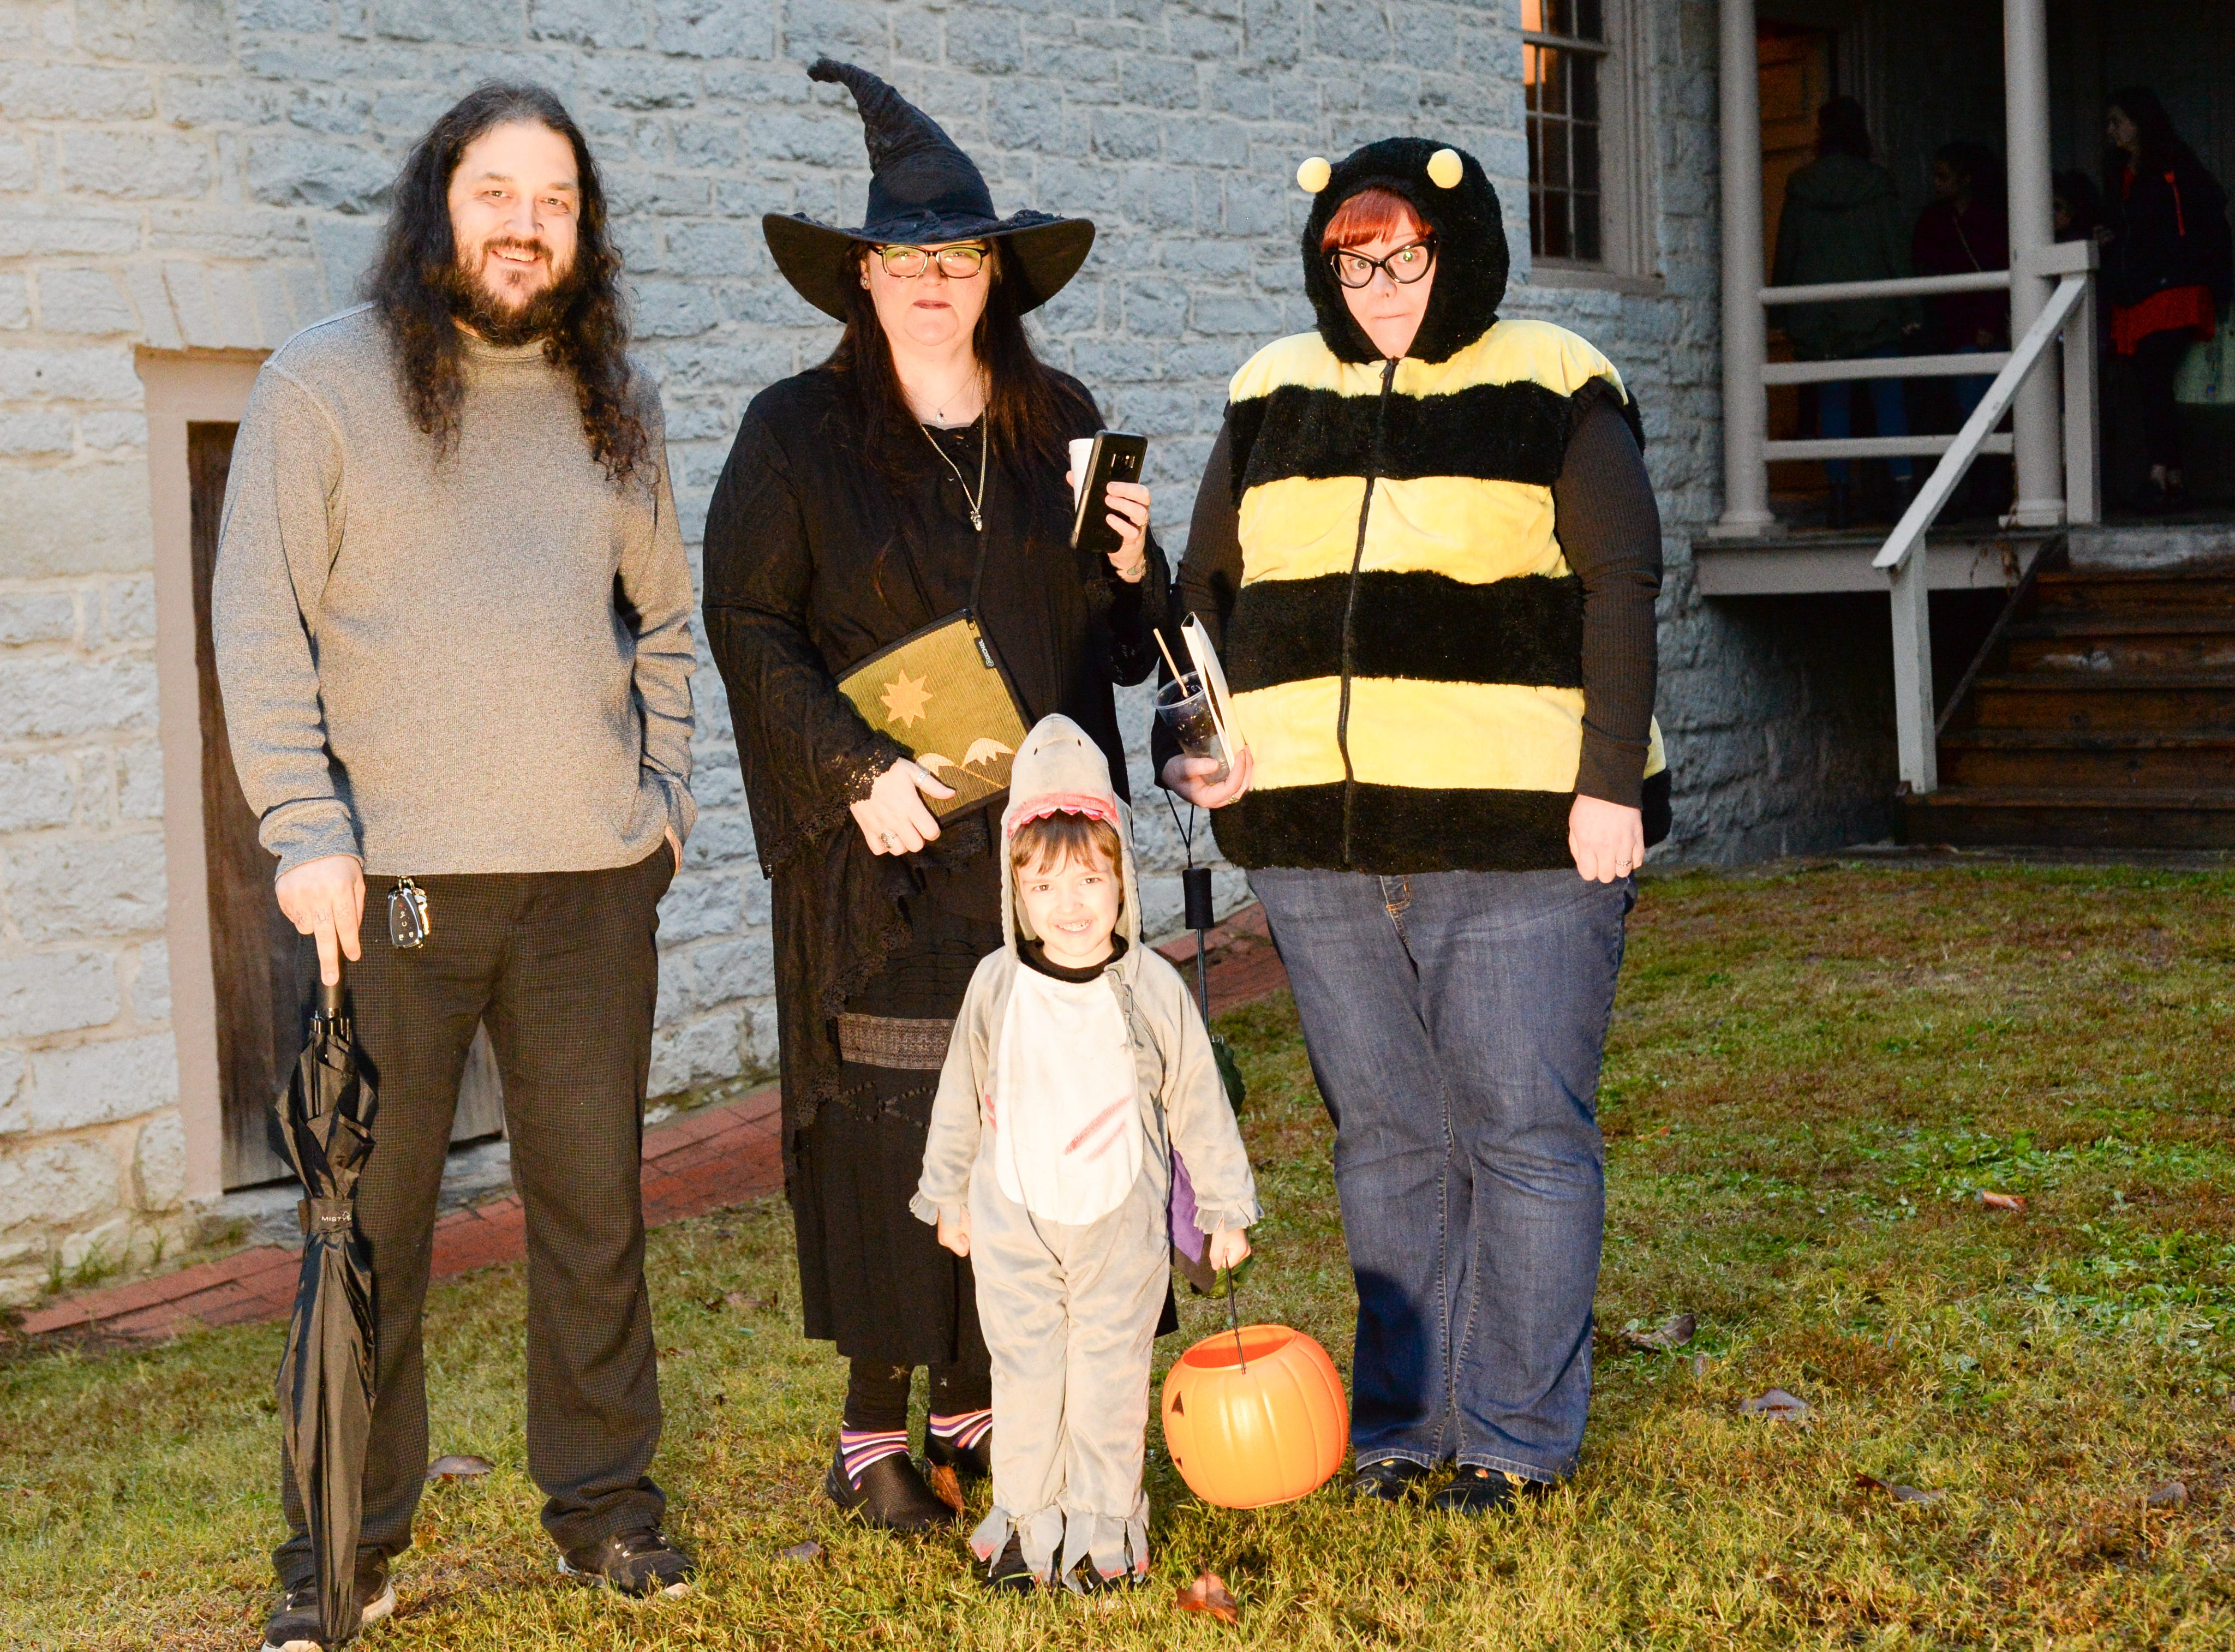 Attendees of all ages enjoy the Castle of Villains trick or treating event at Historic Rock Castle in Hendersonville on Friday, Oct. 26.